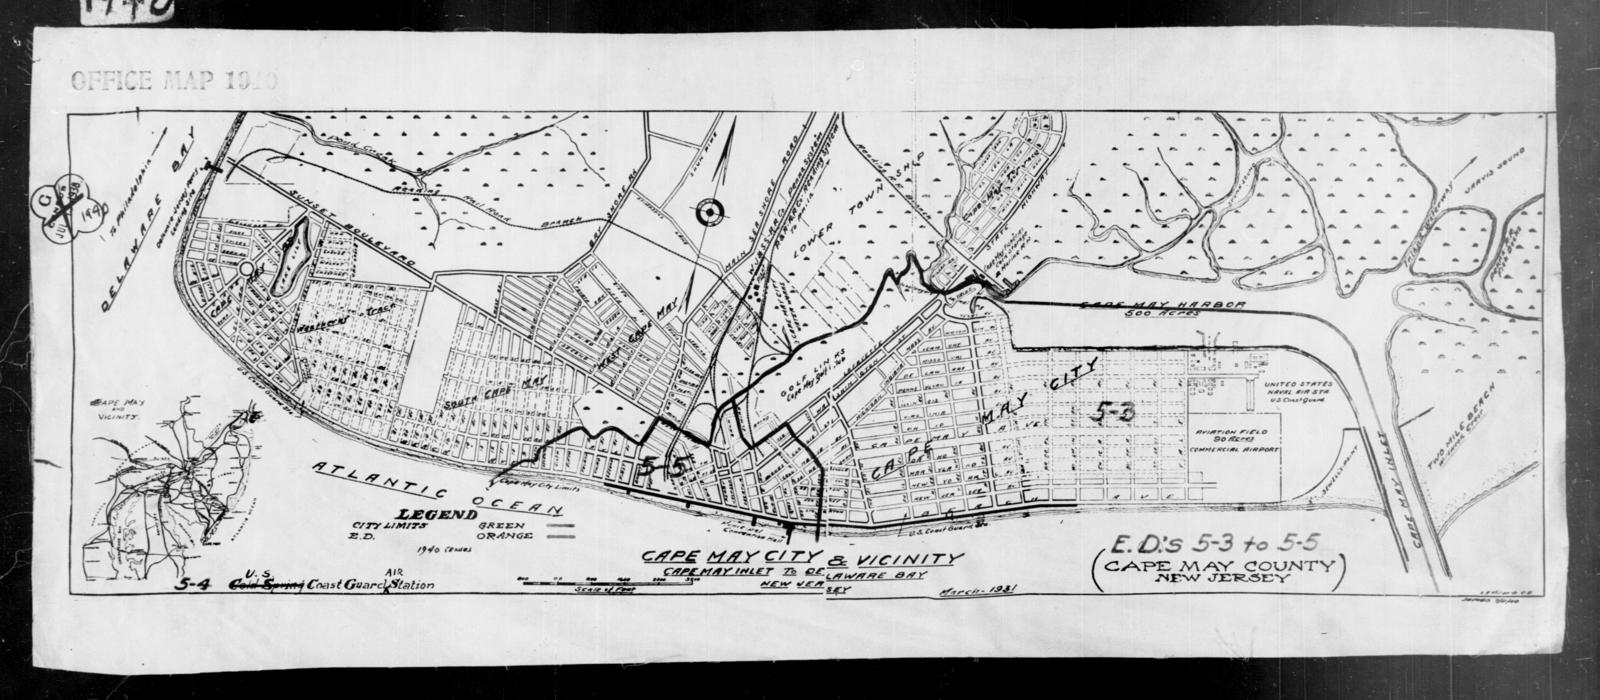 1940 Census Enumeration District Maps - New Jersey - Cape ... on rehoboth beach, jersey shore, long branch, ocean county, cape may lighthouse, town of cape may map, mercer county, leonia new jersey map, cape may beach map, atlantic city, cape may tourist map, cape may county, cape may county herald, town bank cape may map, cape may downtown map, cape may city map, southern new jersey map, stone harbor, sea isle city, delaware bay, south jersey, asbury park, rio grande, belmar new jersey map, cape may street map, cumberland county new jersey map, cape may diamonds, cape may sound, ocean city, lawrence township new jersey map, strathmere new jersey map, allentown new jersey map, cape may national wildlife refuge map, cape may county map, cape may nj,